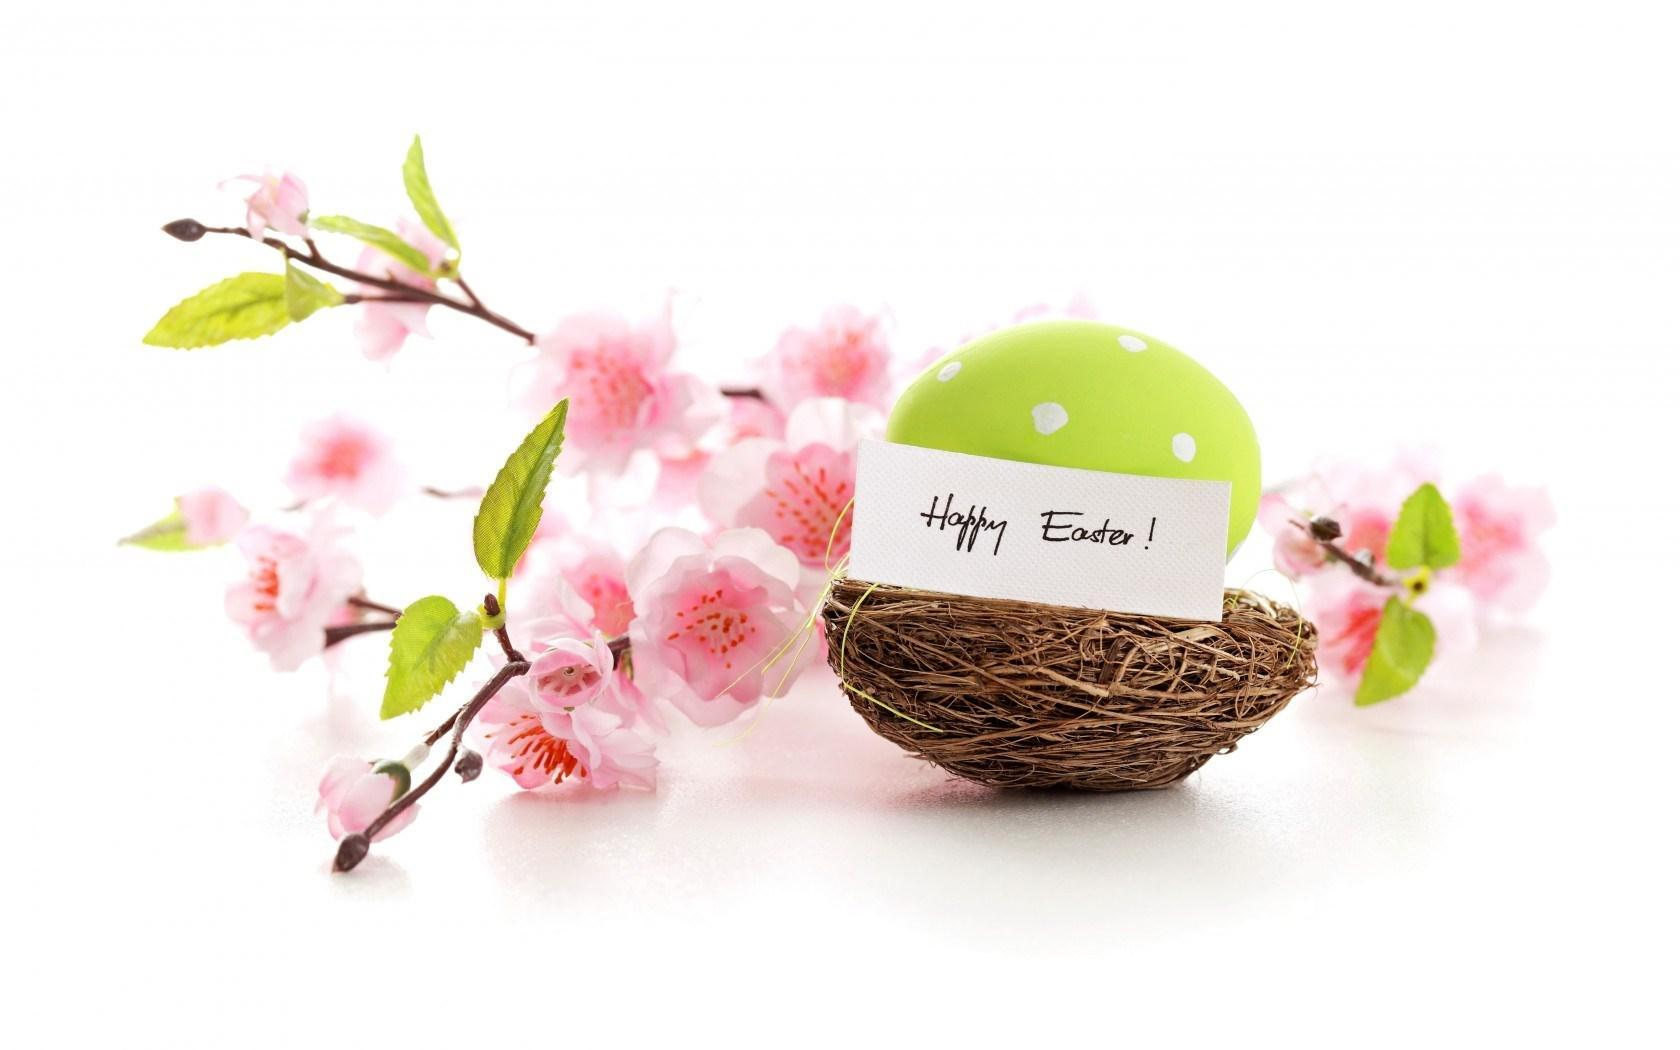 happy easter spring flowers eggs